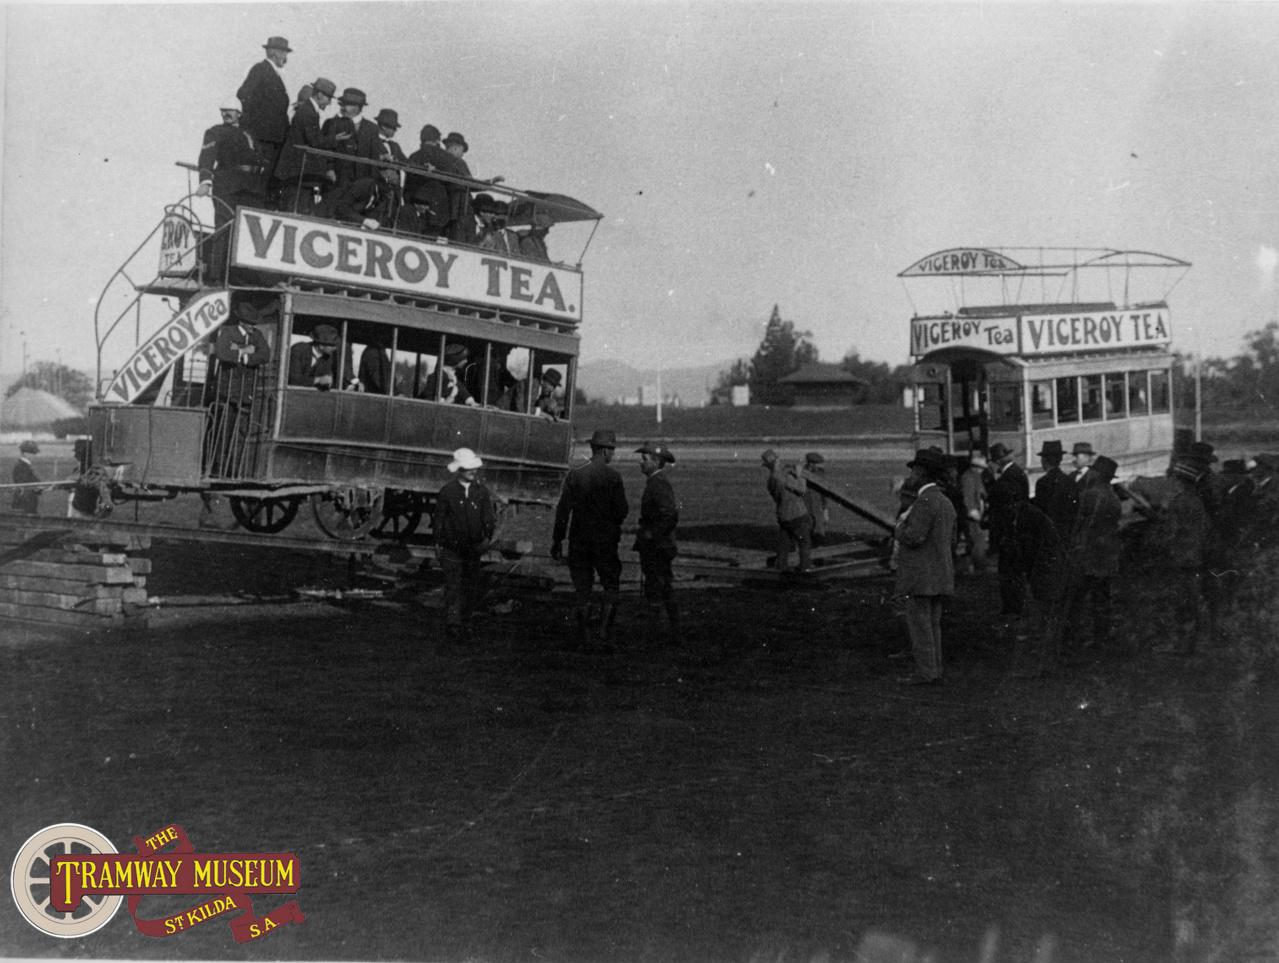 A fundraising event was held at Adelaide Oval during the First World War to help look after the soldiers who had gone to the front. One of the main acts was the staged collision of two redundant horse trams on the oval before setting them on fire.